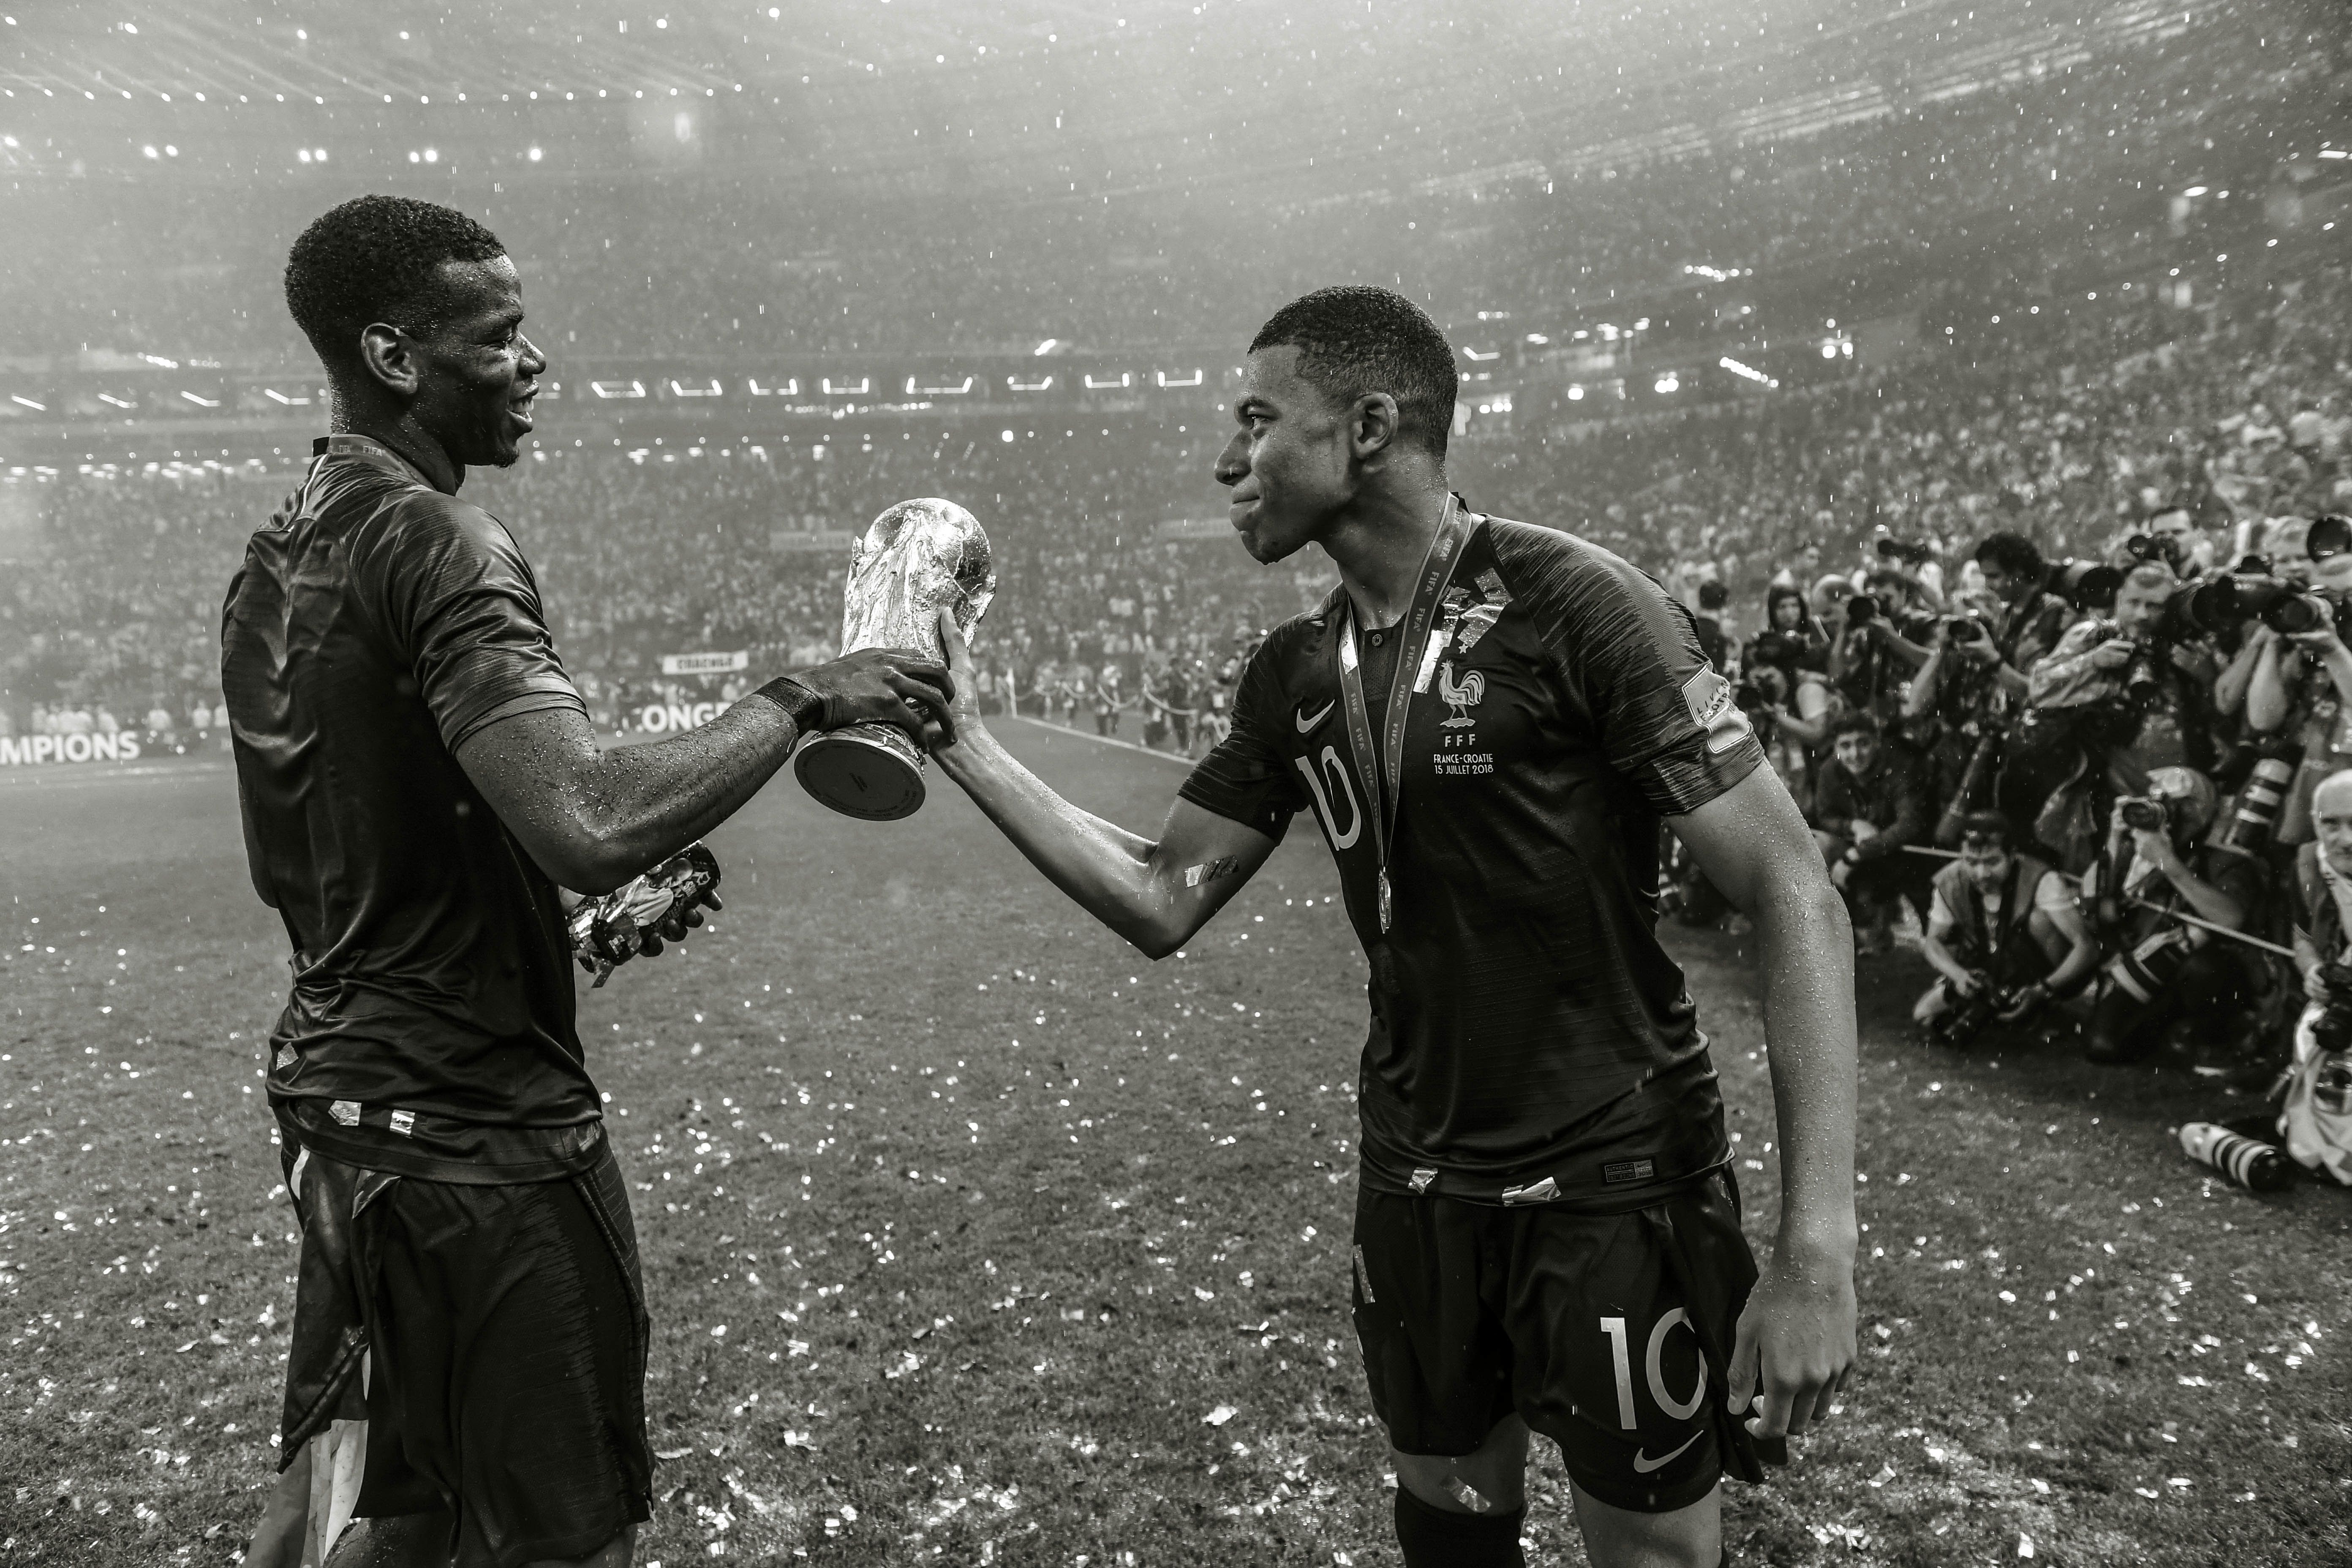 MOSCOW, RUSSIA - JULY 15:  (EDITORS NOTE: This image has been converted to black and white) Paul Pogba (L) and Kylian Mbappe of France celebrate victory with the World Cup Trophy following his side victory in the 2018 FIFA World Cup Russia Final between France and Croatia at Luzhniki Stadium on July 15, 2018 in Moscow, Russia.  (Photo by David Ramos - FIFA/FIFA via Getty Images)